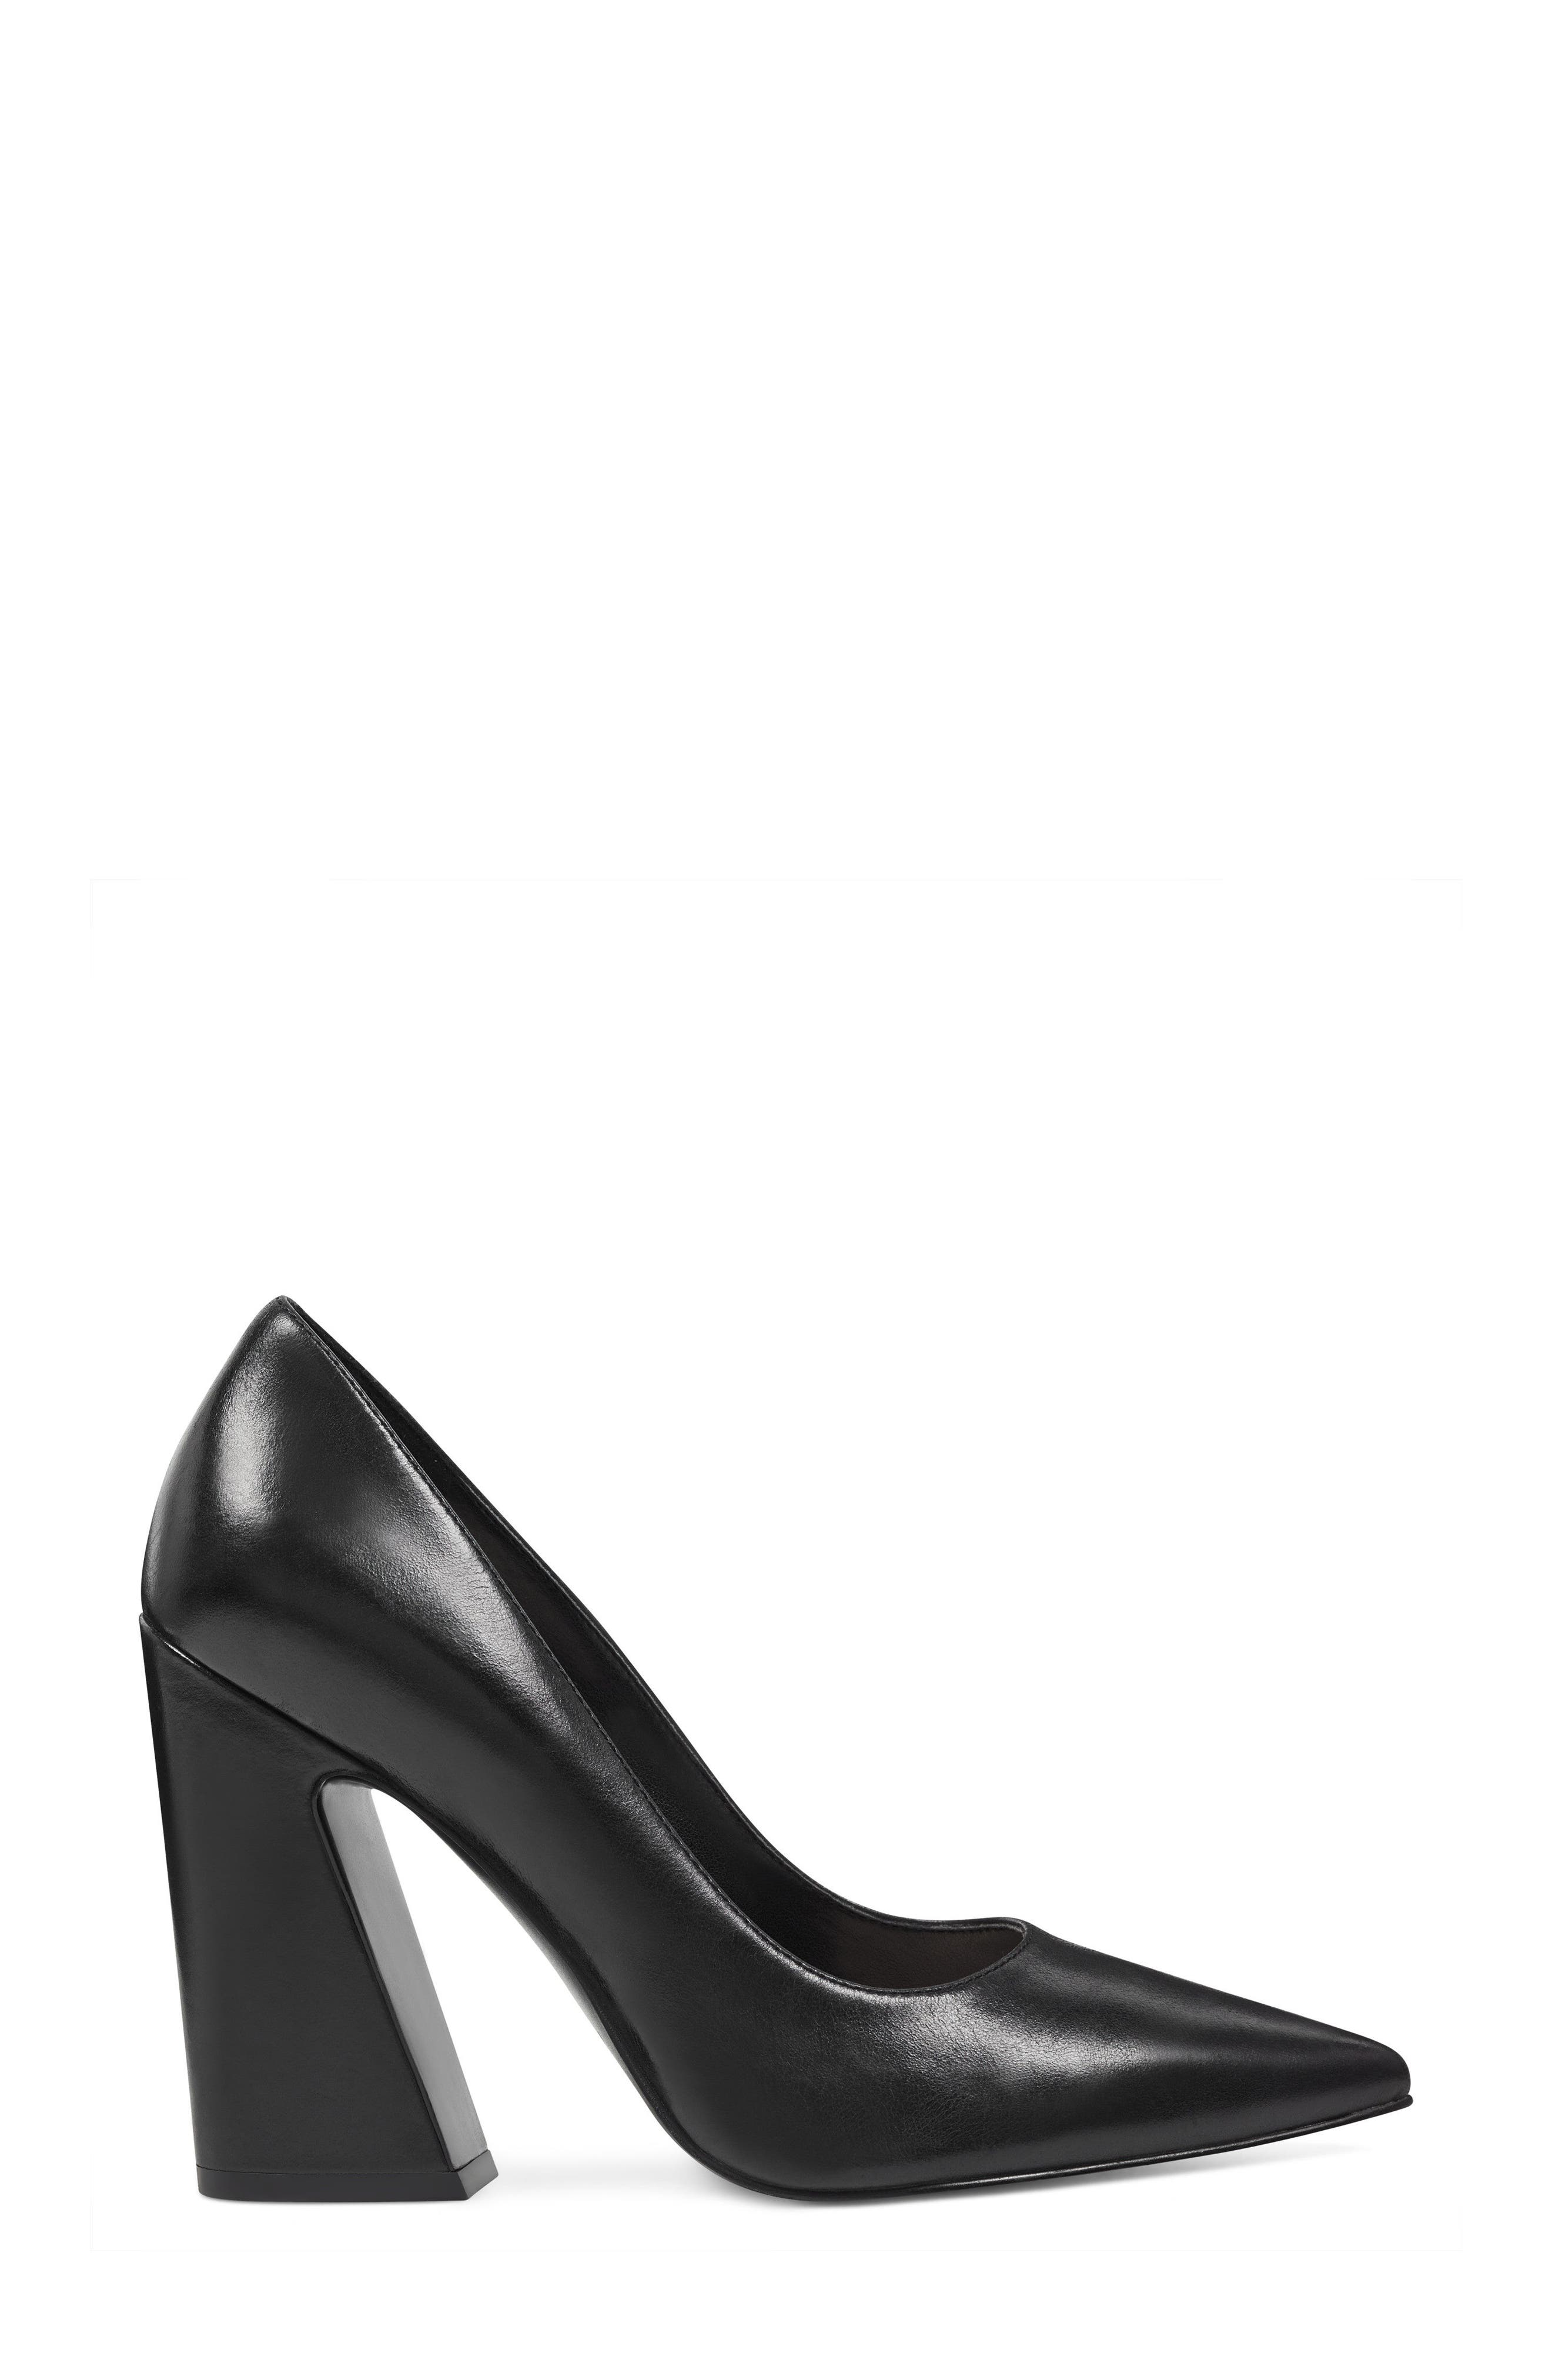 NINE WEST,                             Henra Pointy Toe Pump,                             Alternate thumbnail 3, color,                             001